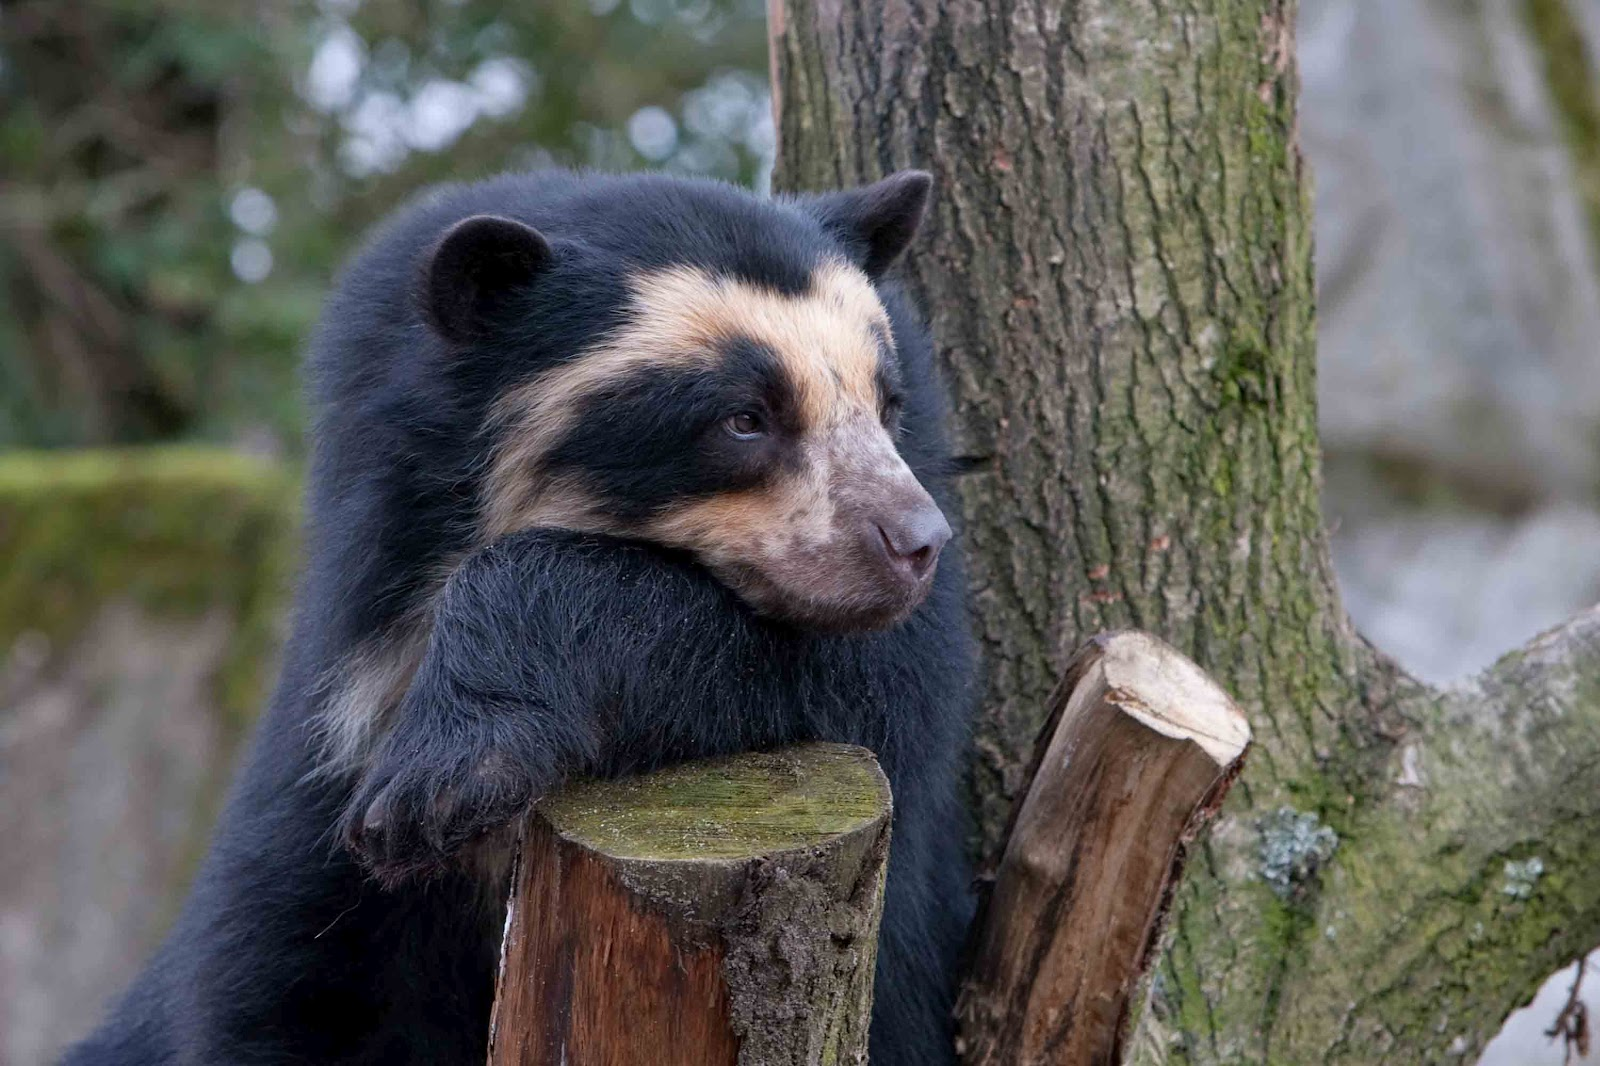 Spectacled Bear | The Biggest Animals Kingdom